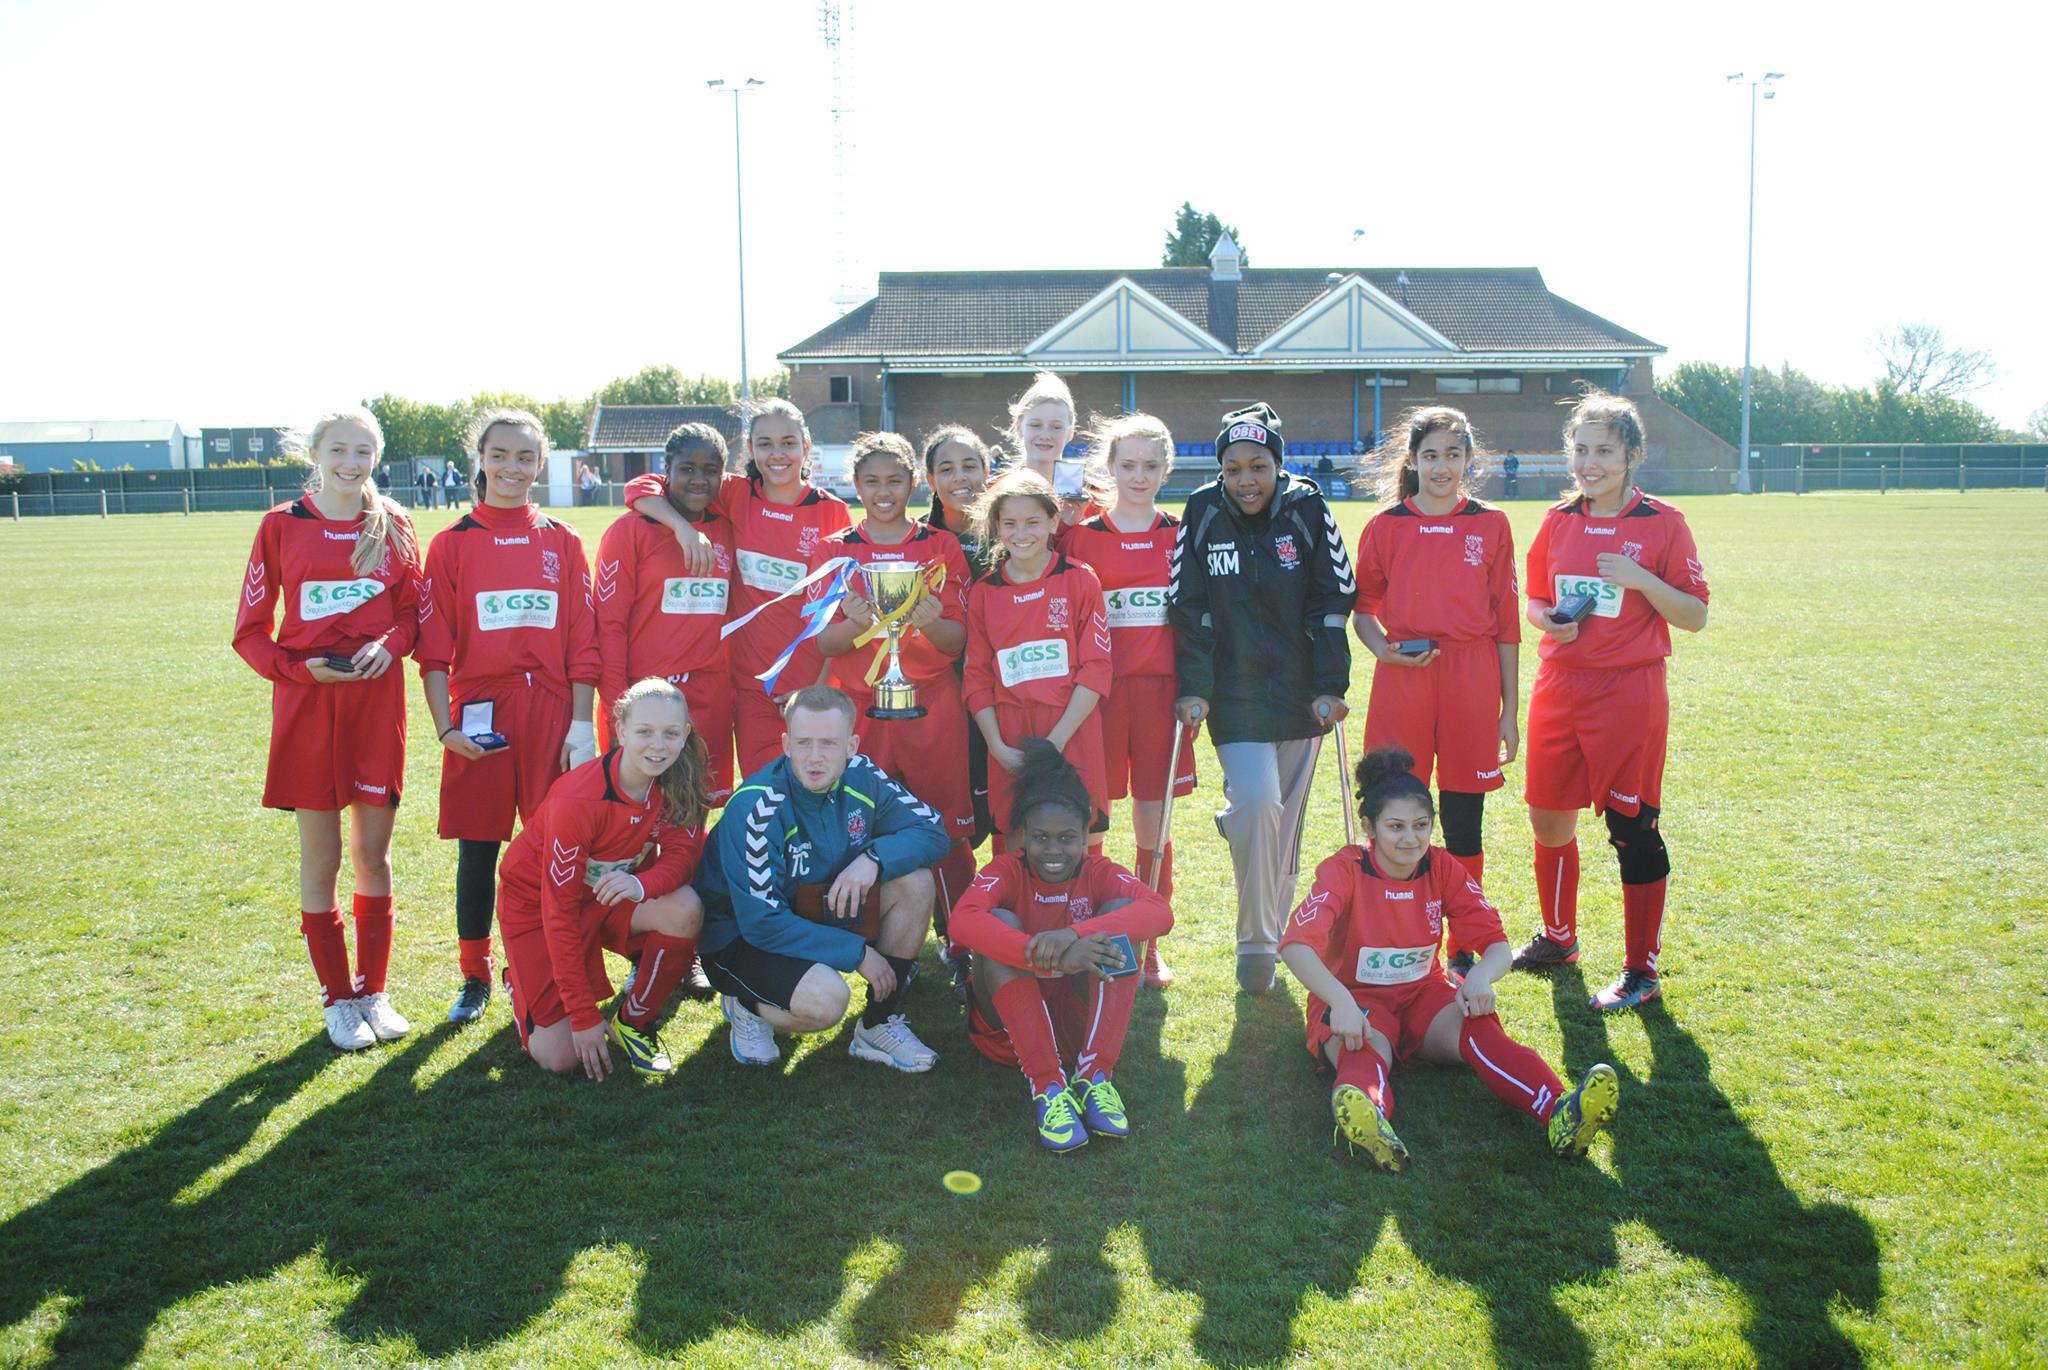 LOASS to compete at Bognor Regis Soccer Tournament this weekend